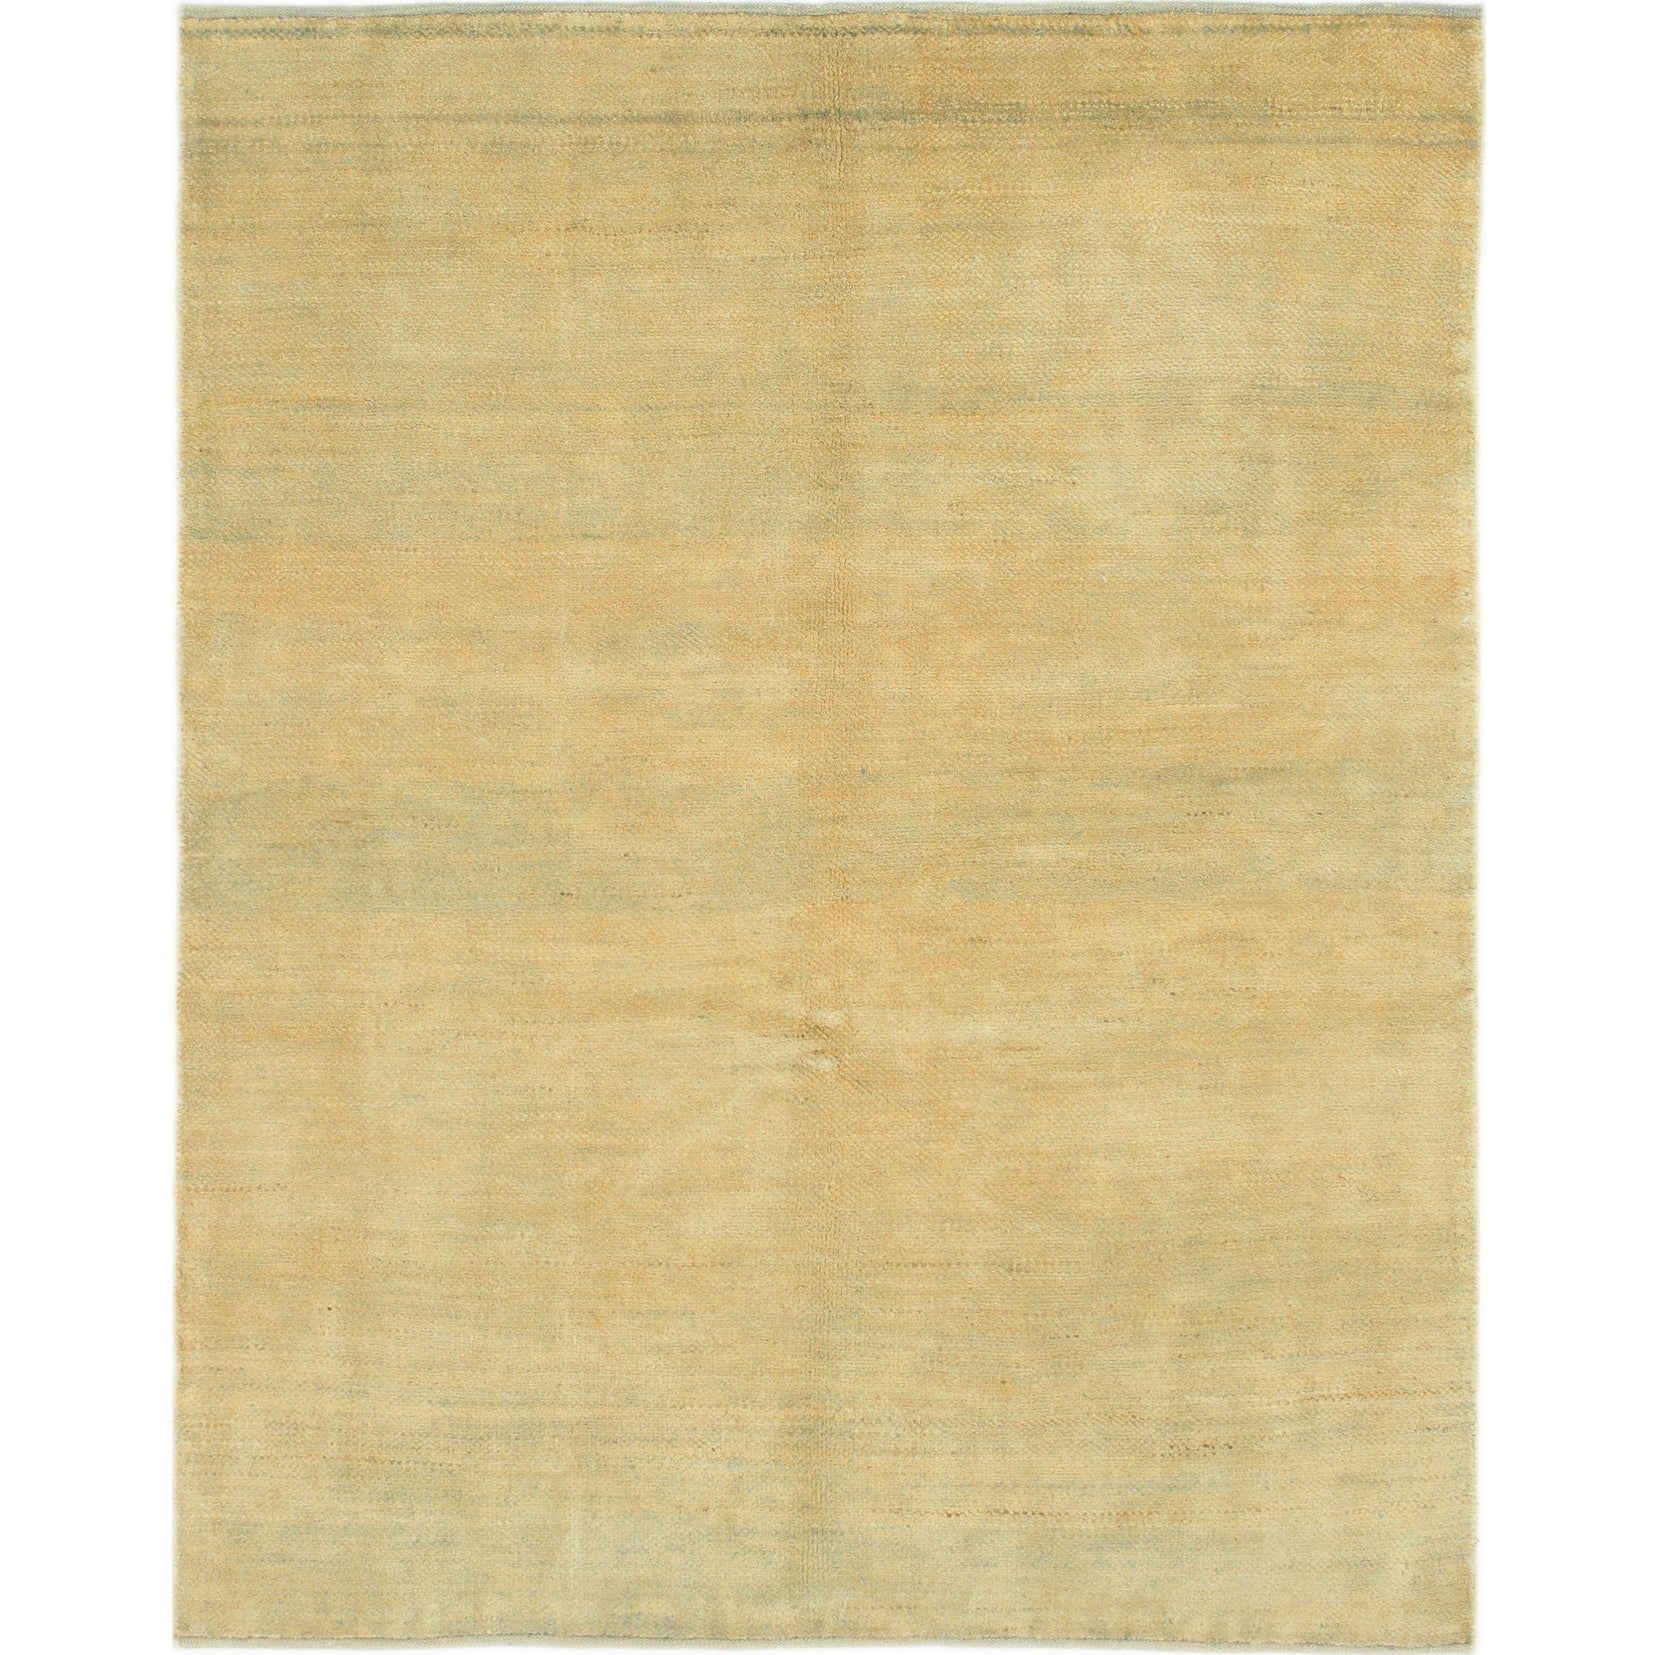 Hand Knotted Kashkuli Gabbeh Wool Area Rug - 5 x 6 3 (Gold - 5 x 6 3)